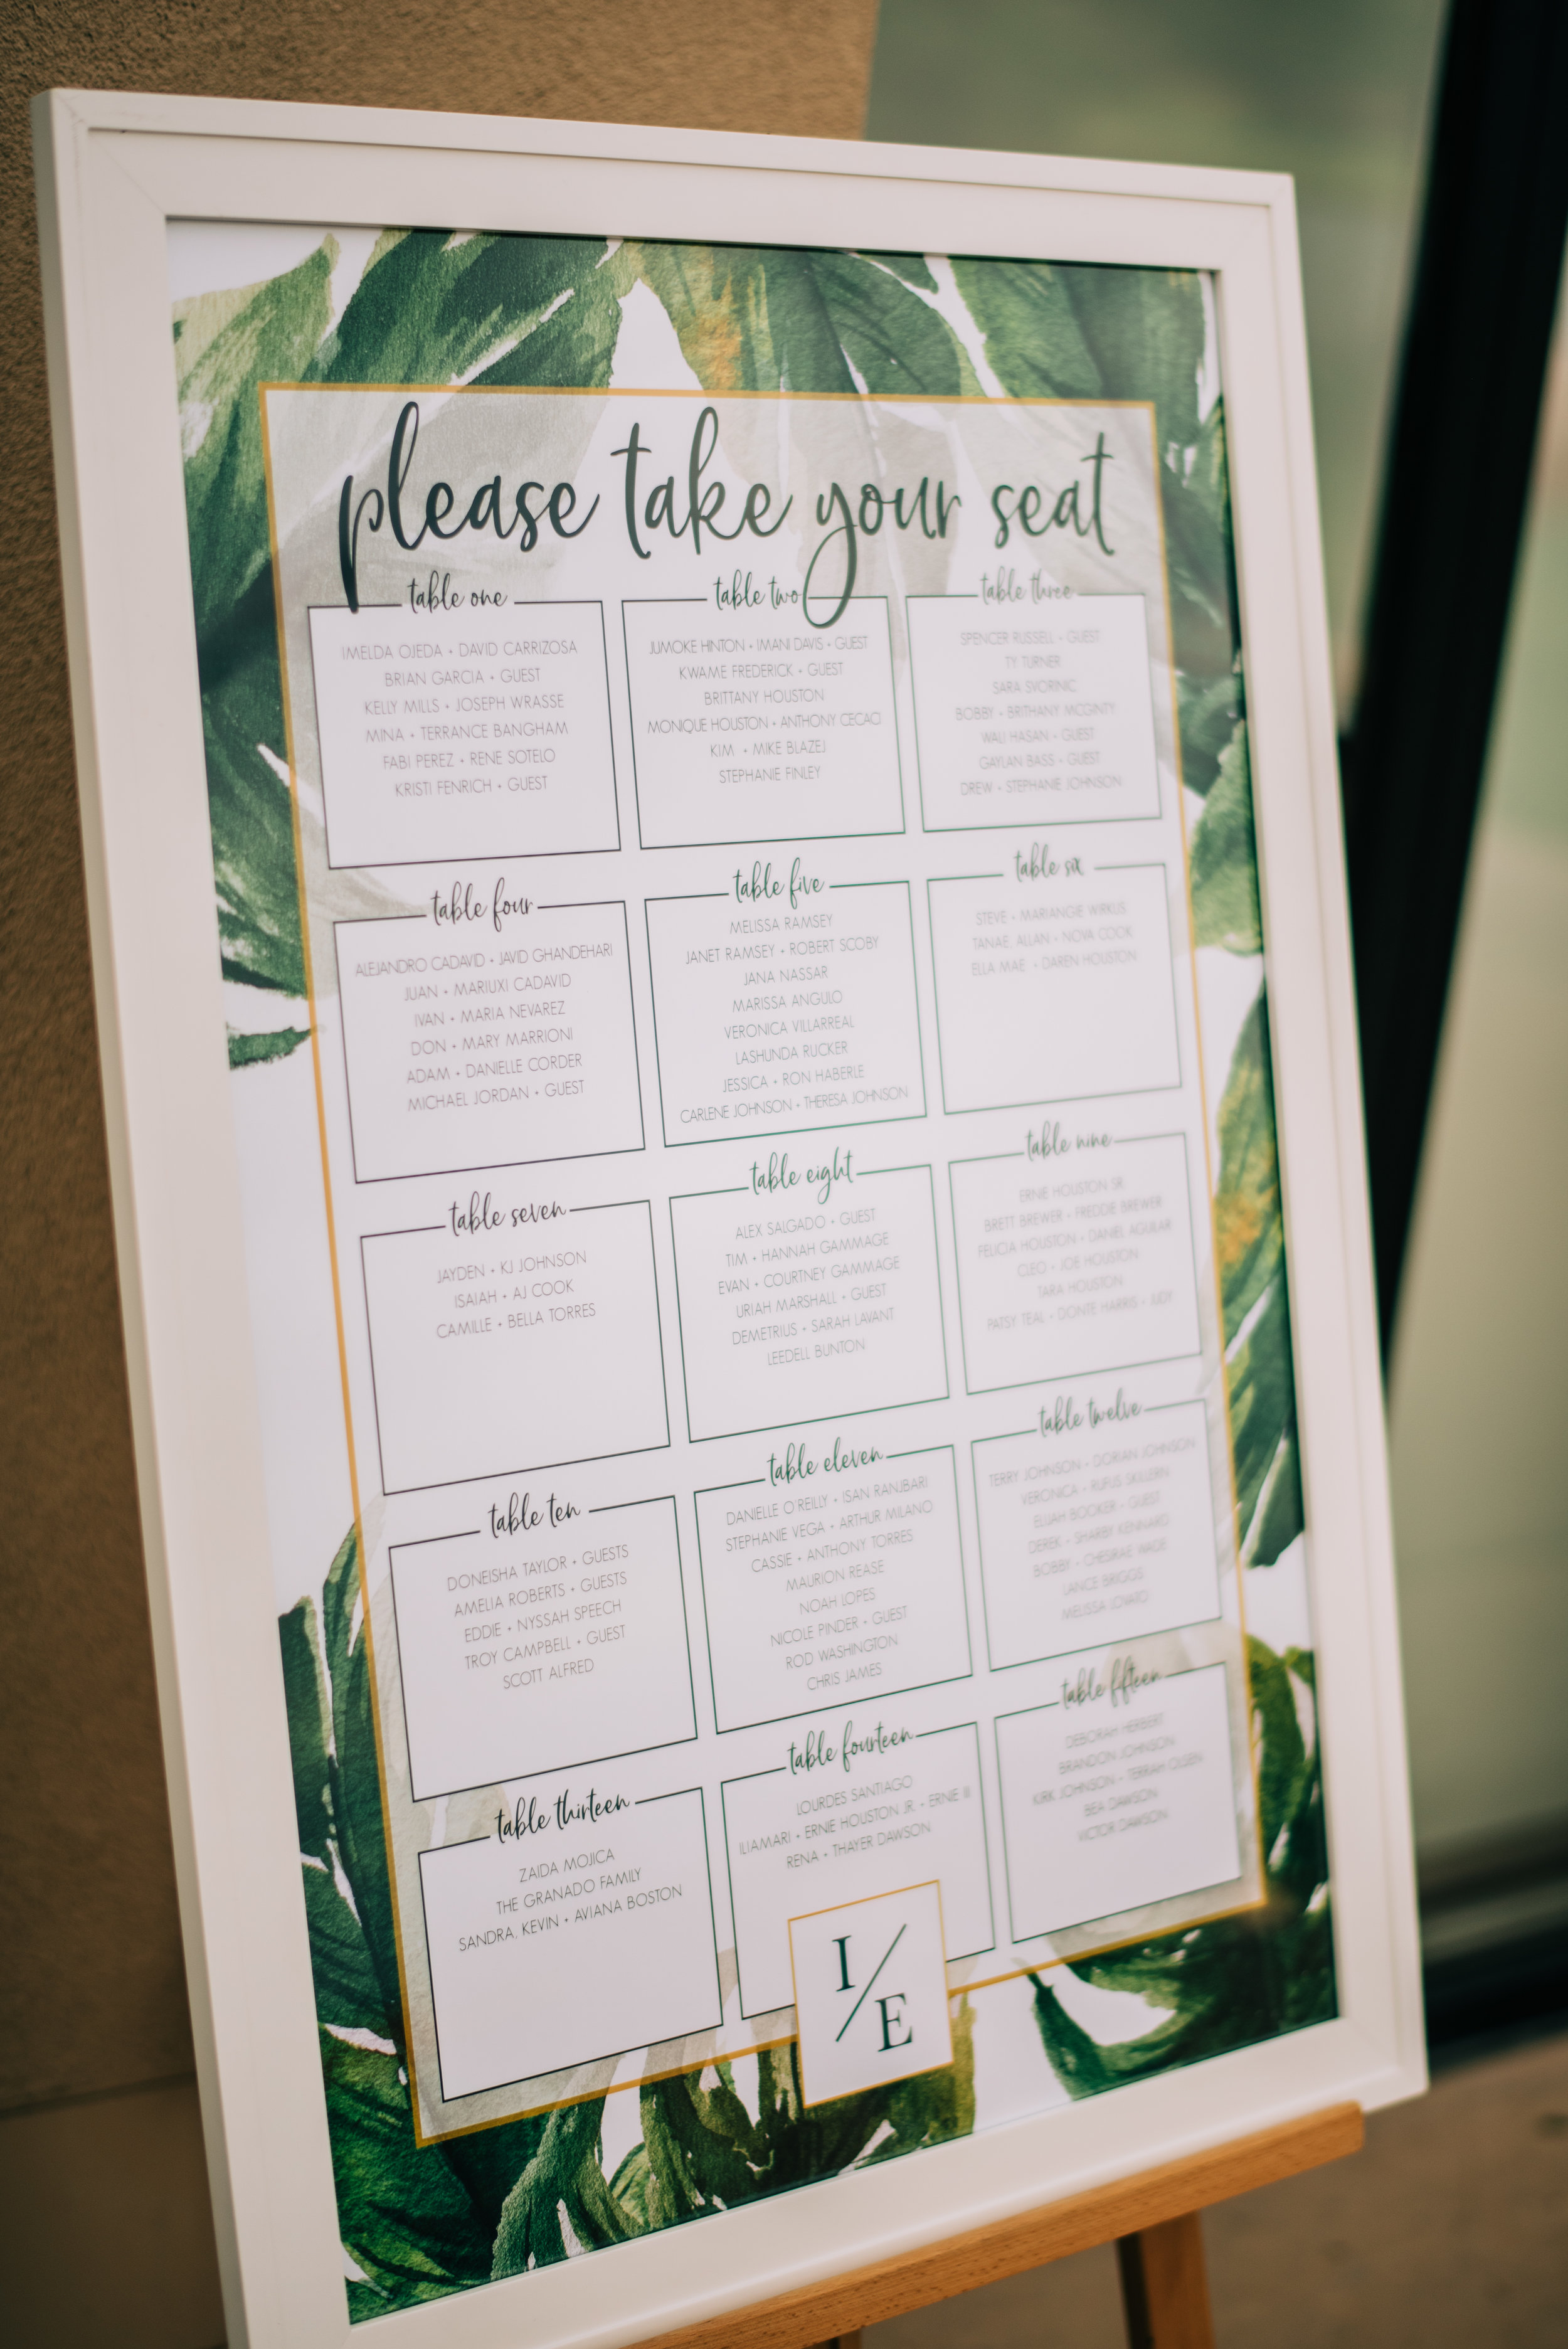 23 escort card display tropical theme wedding assigned reception seating place card escort card poster wedding guest tables Life Design Events photos by Josh Snyder Photography.jpg